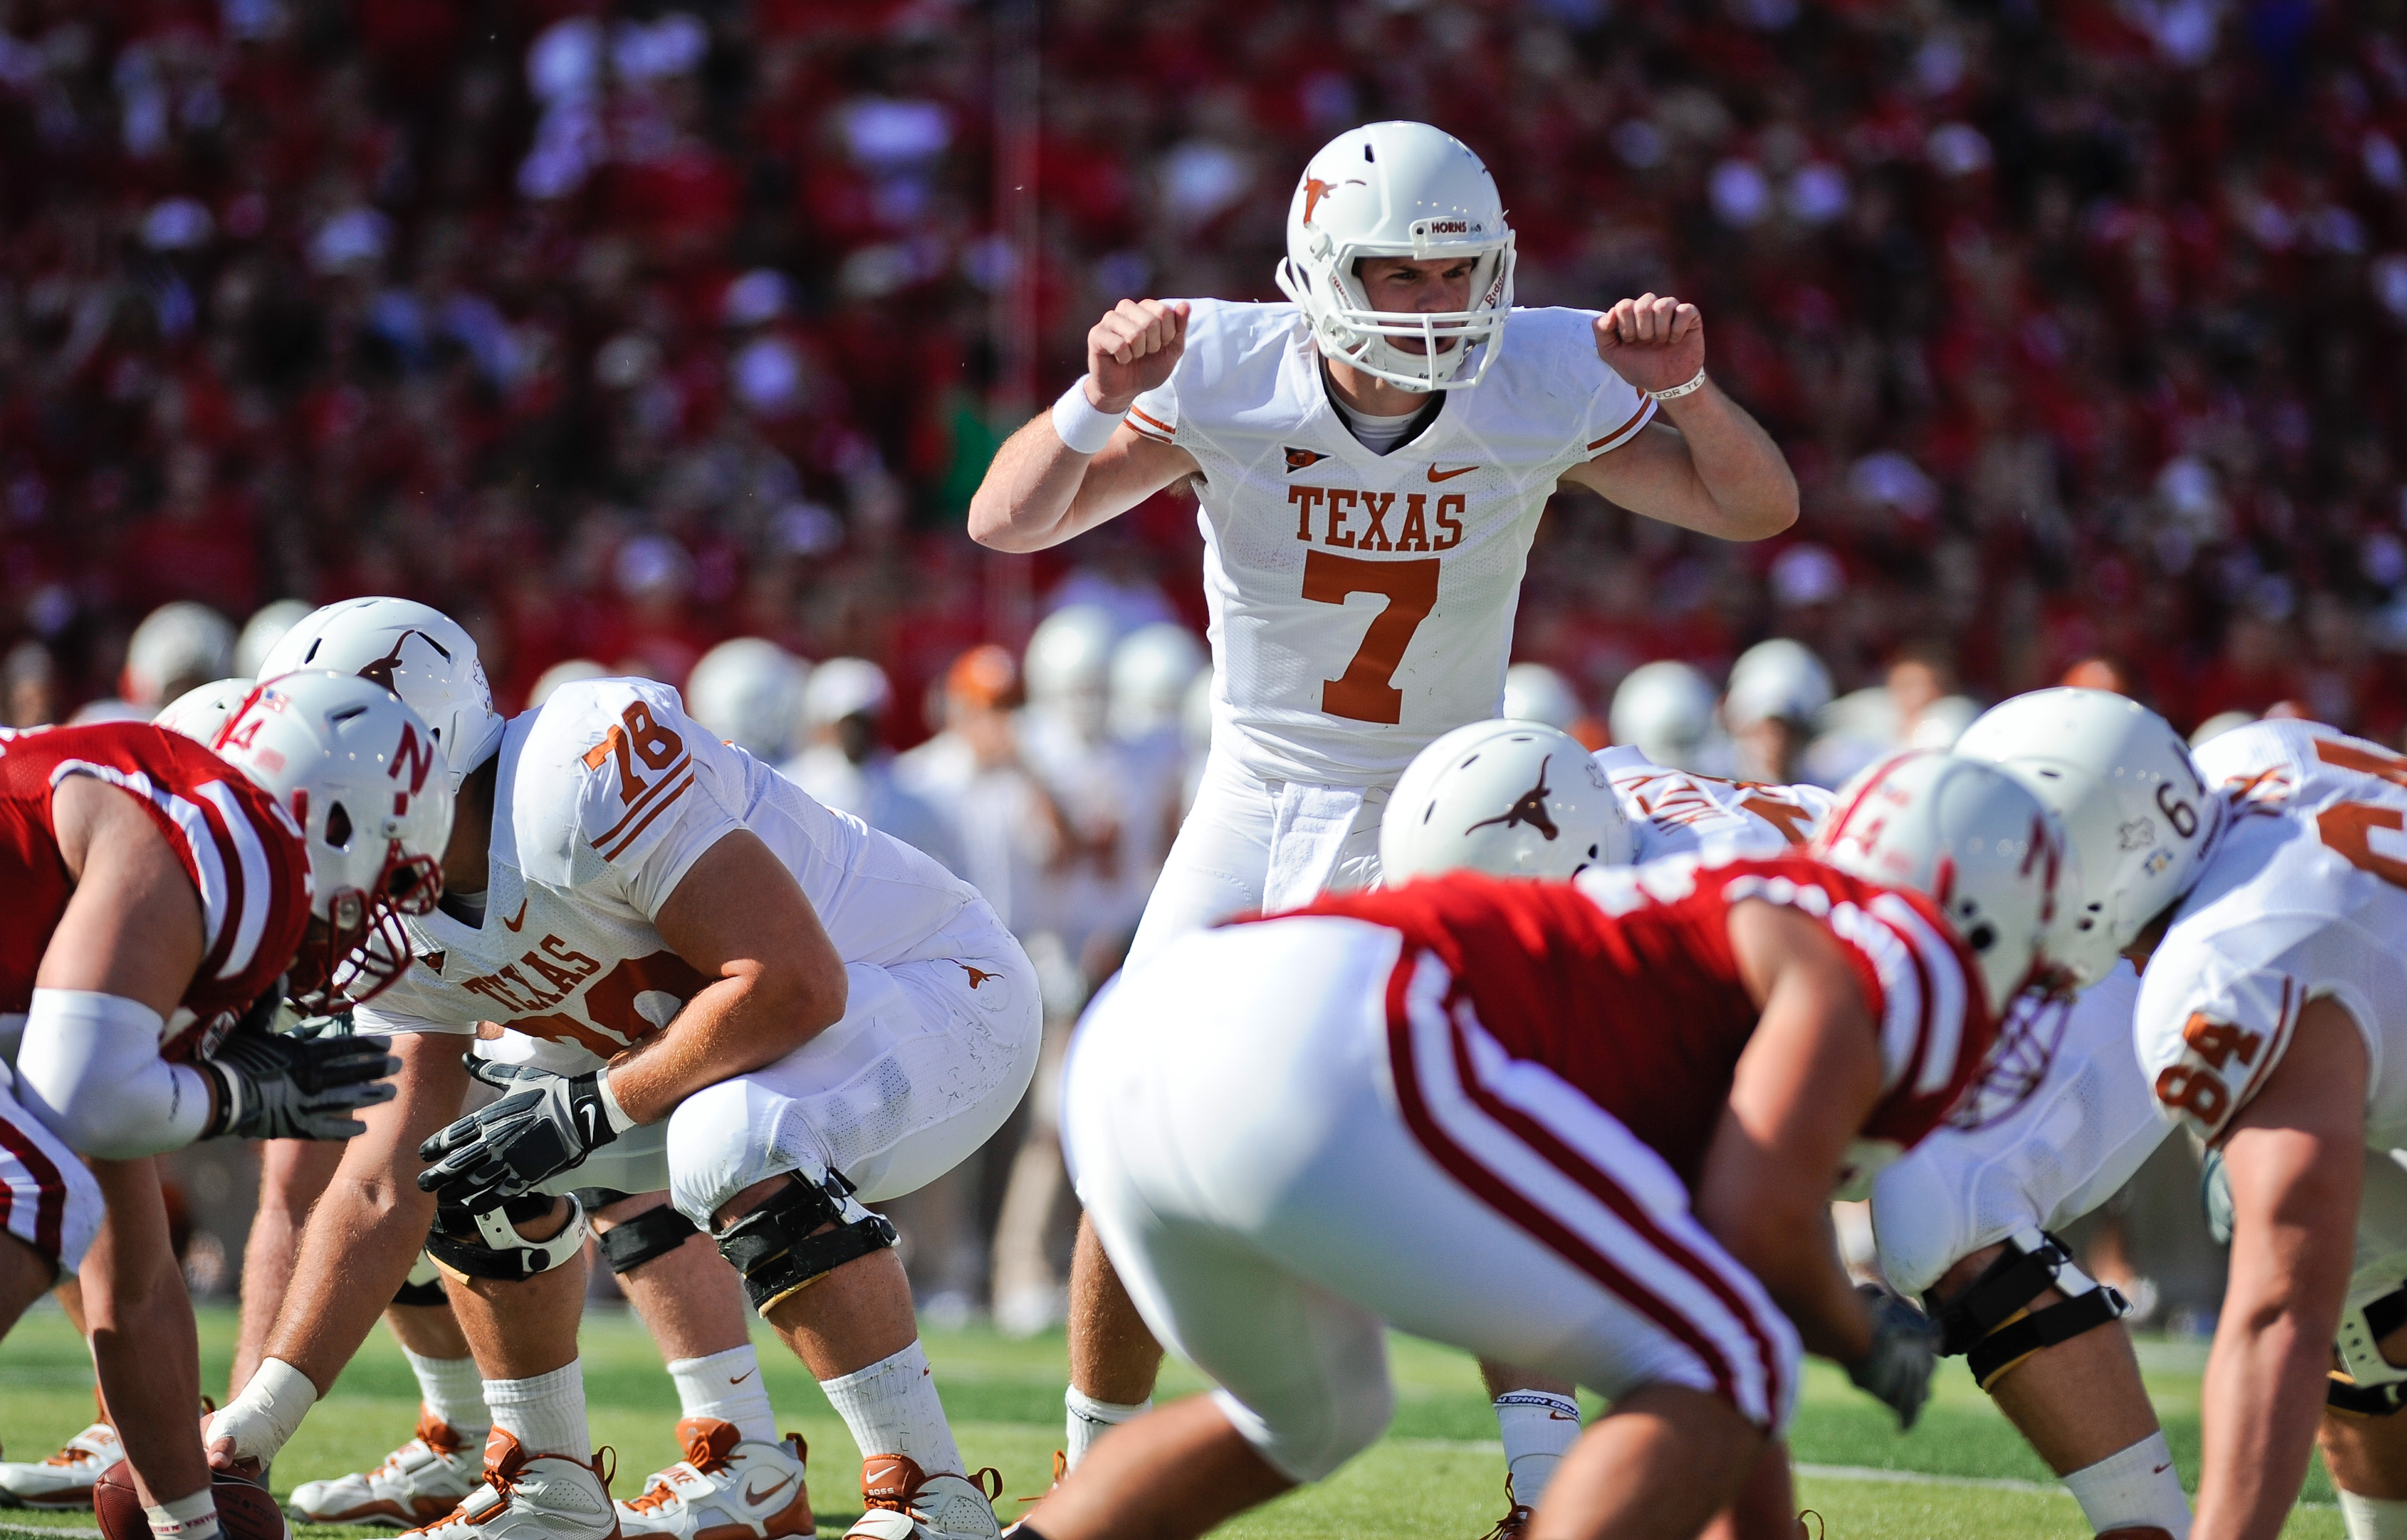 LINCOLN, NE - OCTOBER 16: Quarterback Garrett Gilbert #7 of the Texas Longhorns during first half action of their game at Memorial Stadium on October 16, 2010 in Lincoln, Nebraska. Texas Defeated Nebraska 20-13. (Photo by Eric Francis/Getty Images)